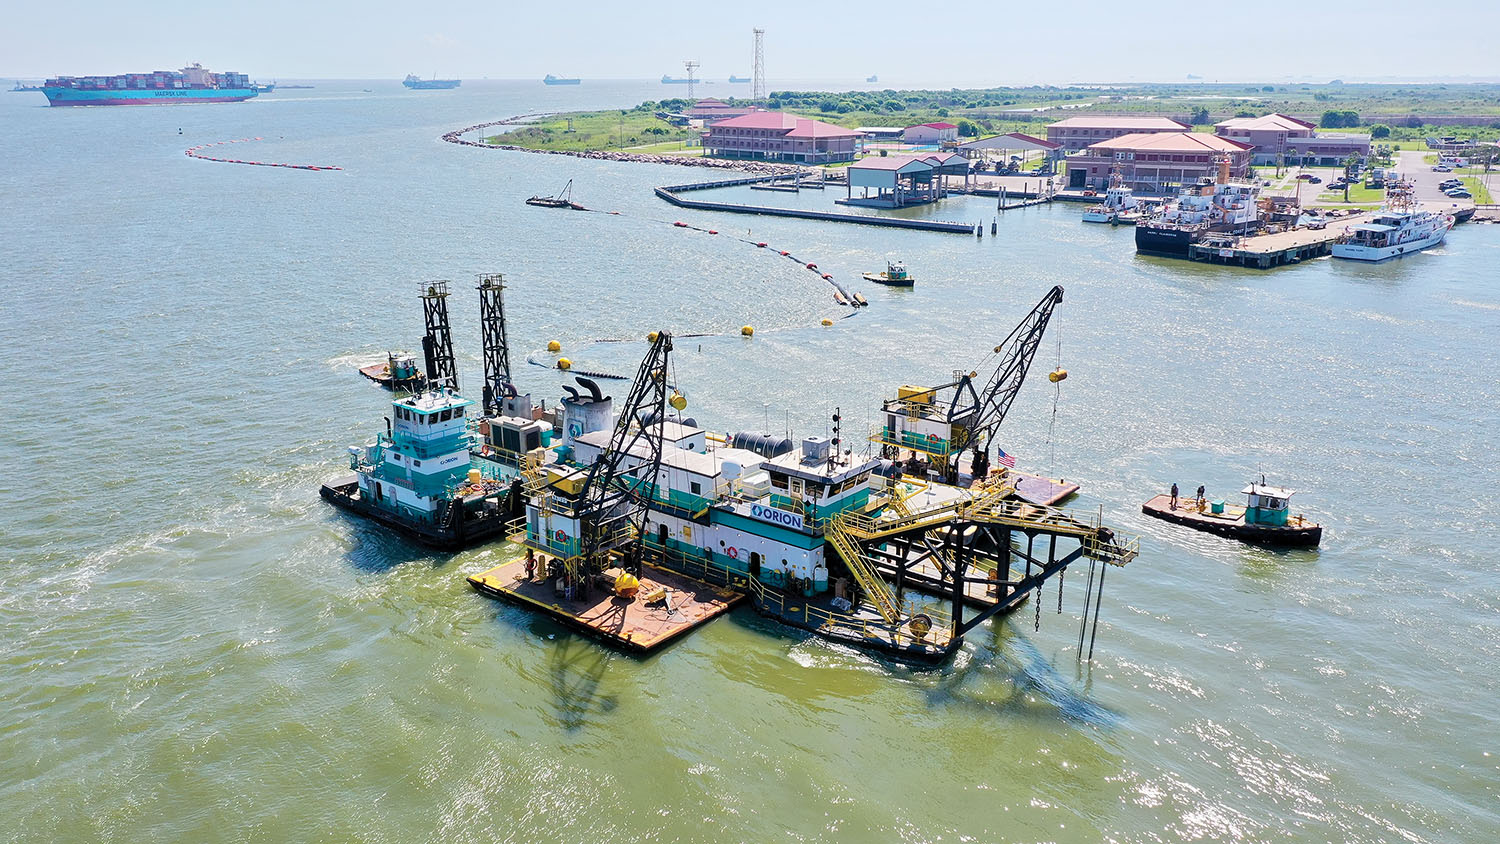 Galveston District Warns Boaters To Stay Clear Of Dredges